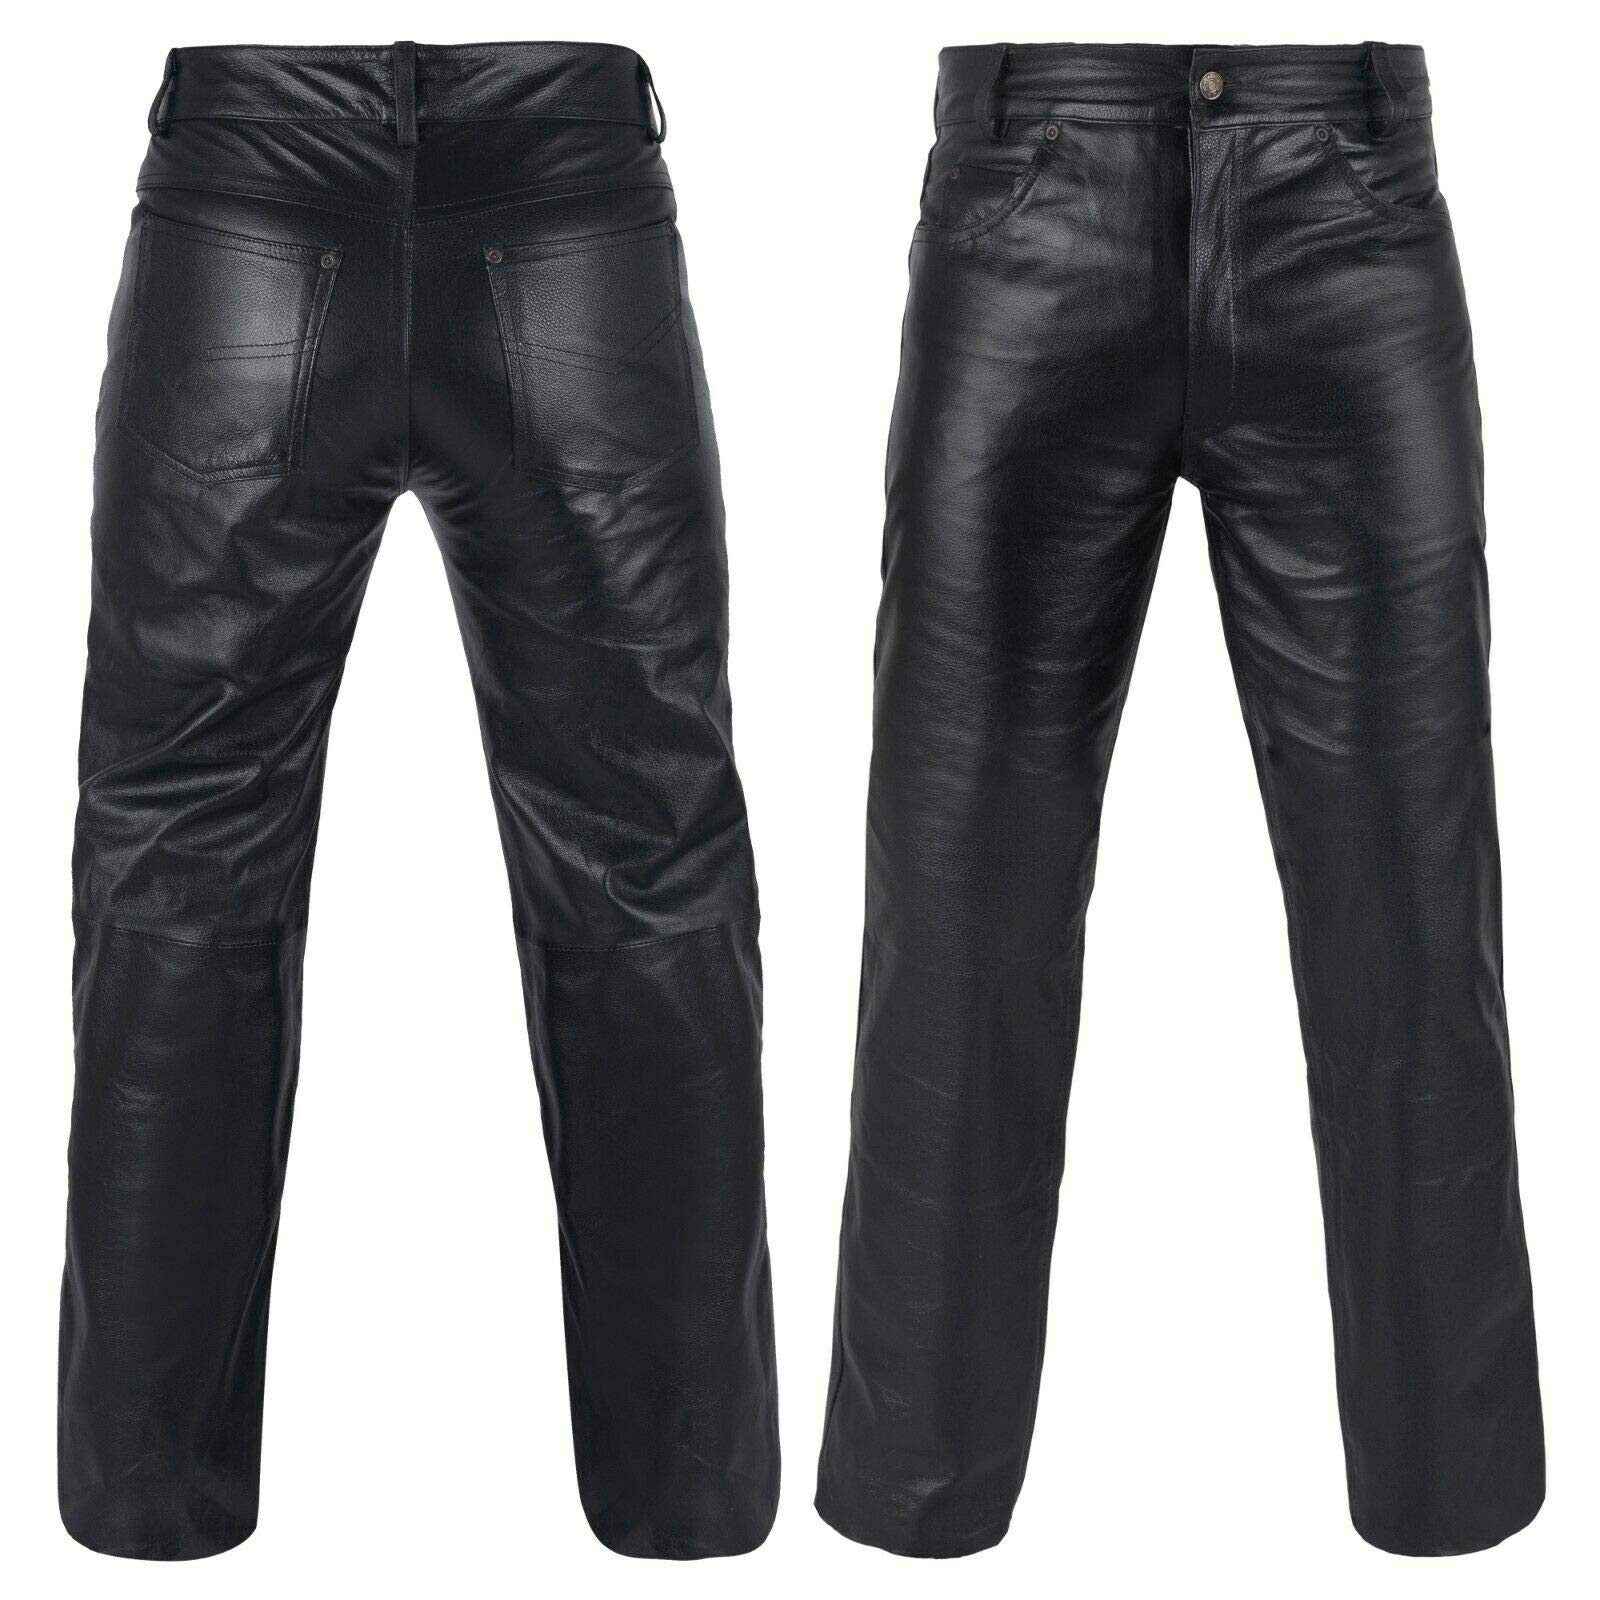 DEFY Men's Cow Skin Full Grain Motorcycle Heavy Duty Stretchable Leather Pants (44'') by DEFY Challenge Your Fear